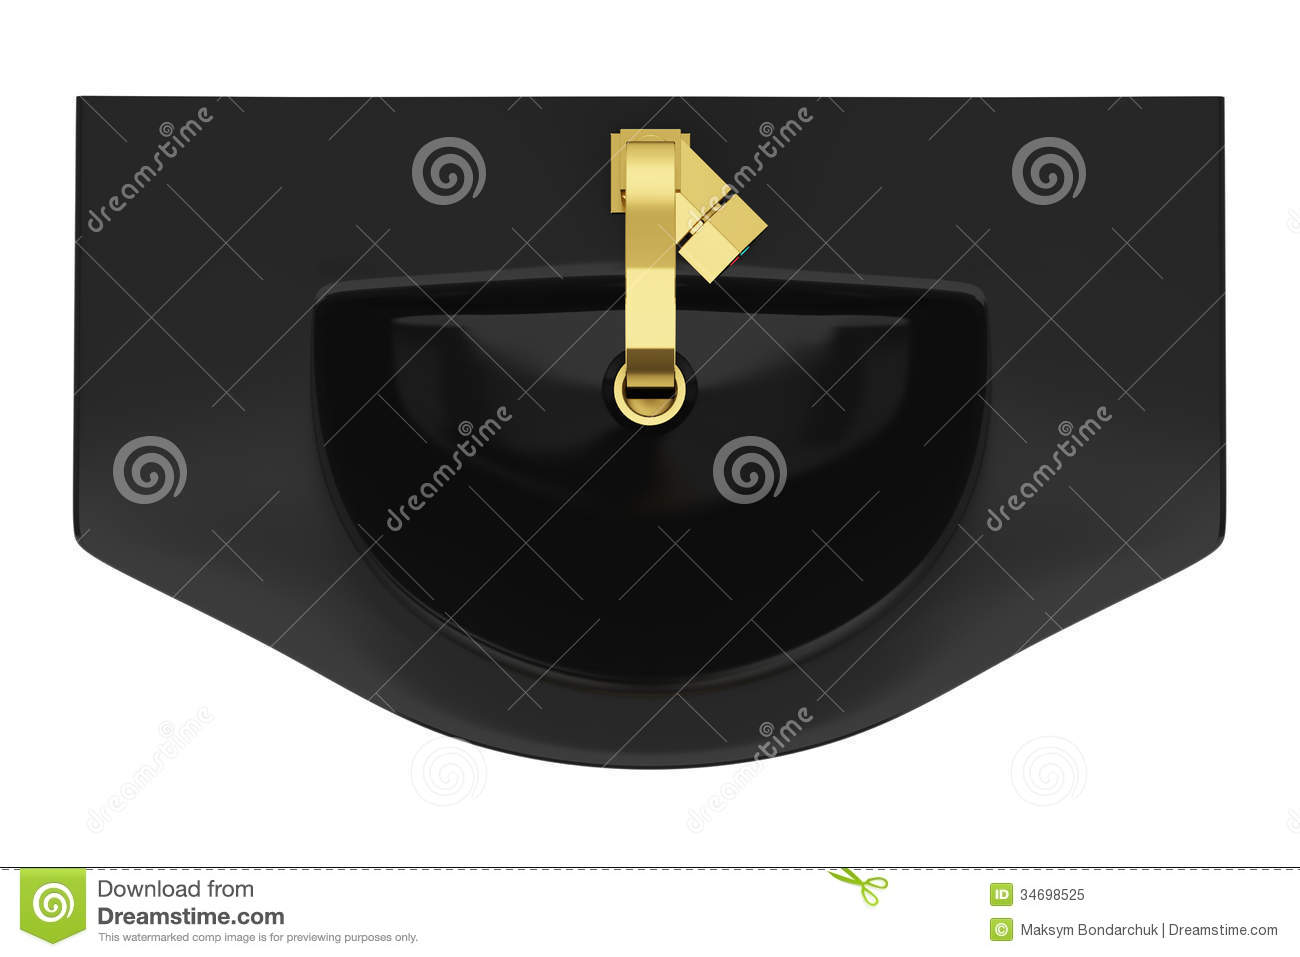 Bathroom sink top view - Top View Of Modern Black Bathroom Sink Isolated On White